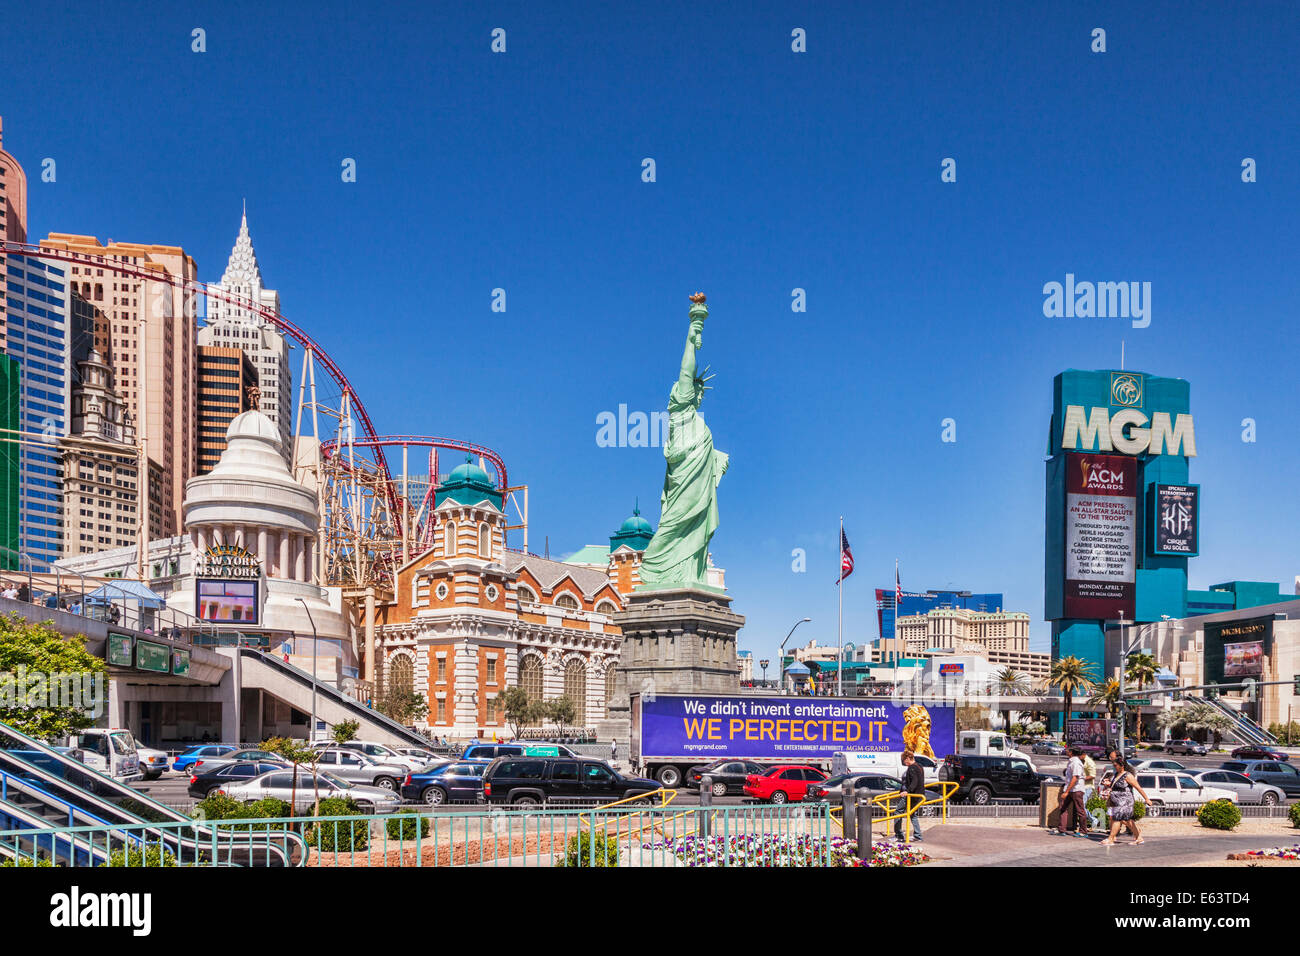 A view of the Las Vegas Strip - Stock Image